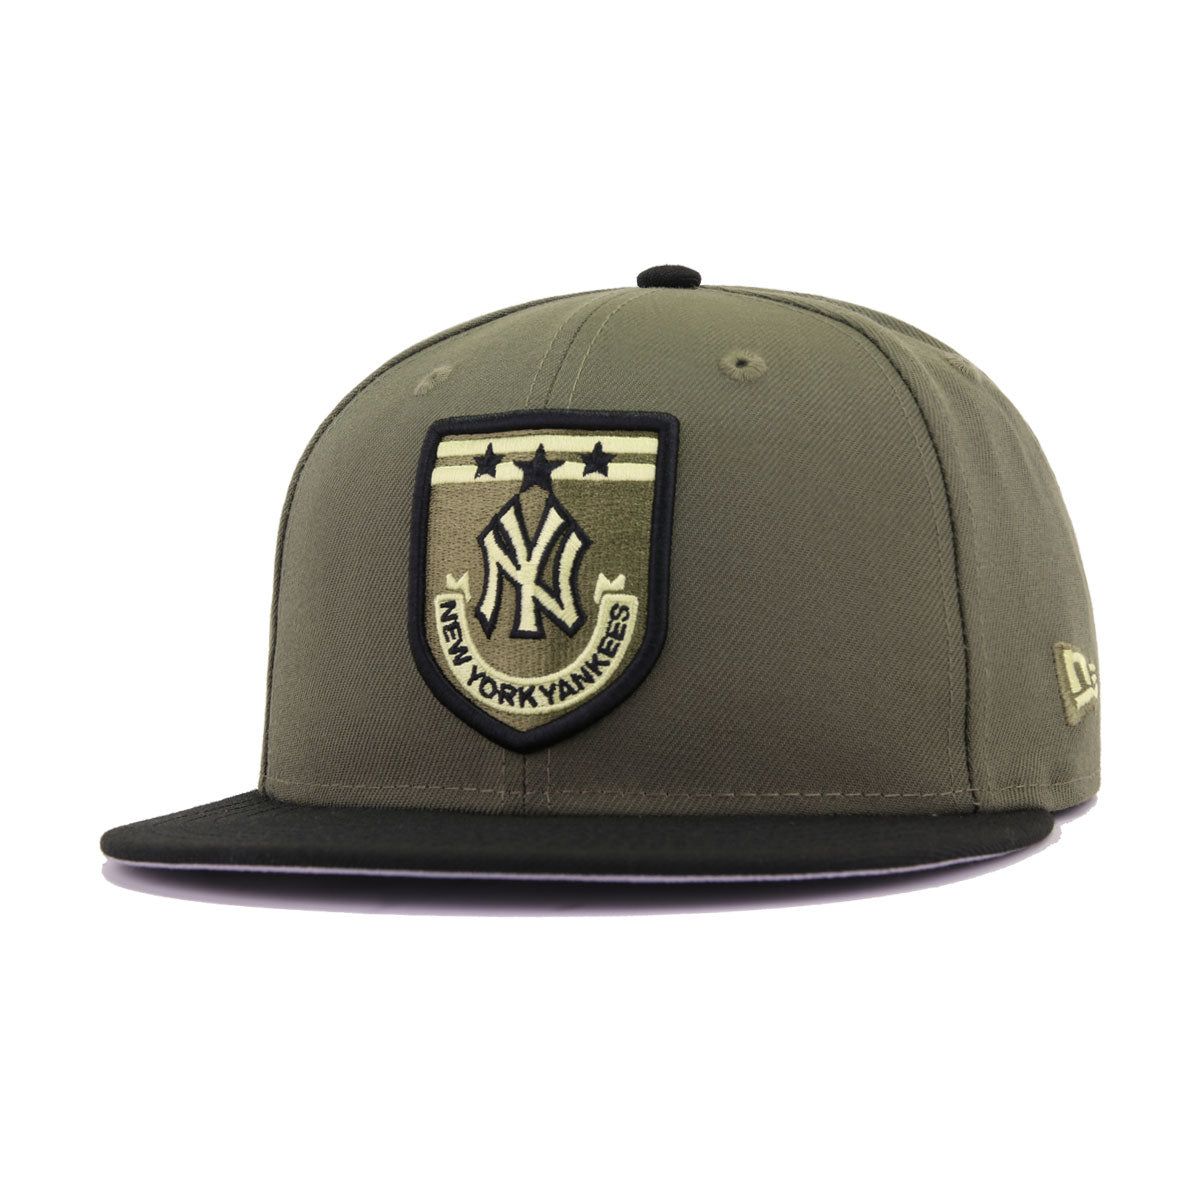 dd4cc0dc9 New York Yankees Armed Forces New Olive Black New Era 9Fifty Snapback